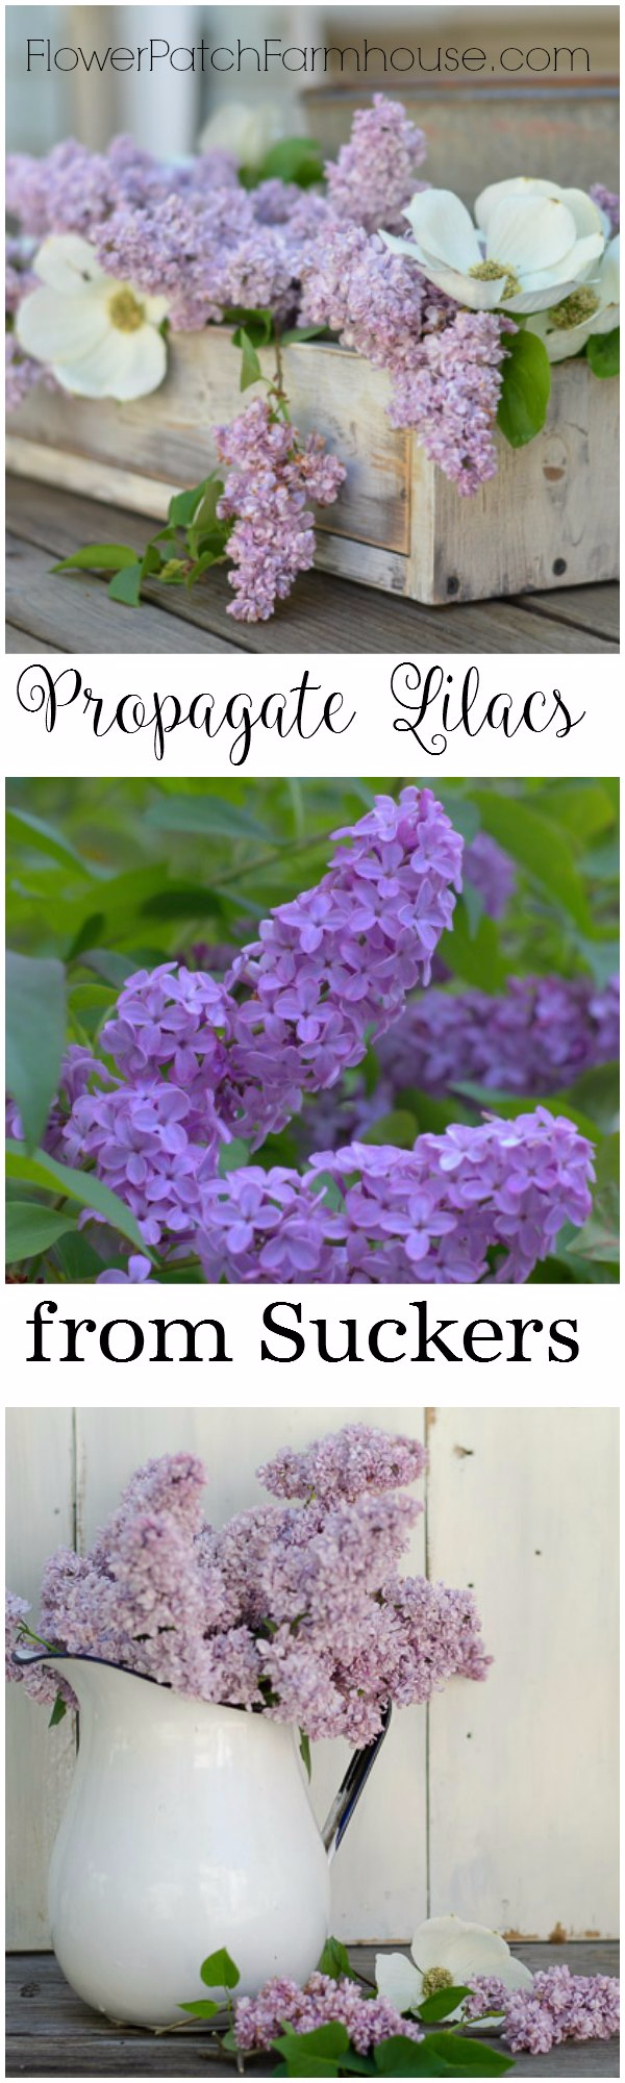 DIY Spring Gardening Projects - Propagate Lilacs From Suckers - Cool and Easy Planting Tips for Spring Garden - Step by Step Tutorials for Growing Seeds, Plants, Vegetables and Flowers in You Yard - DIY Project Ideas for Women and Men - Creative and Quick Backyard Ideas For Summer